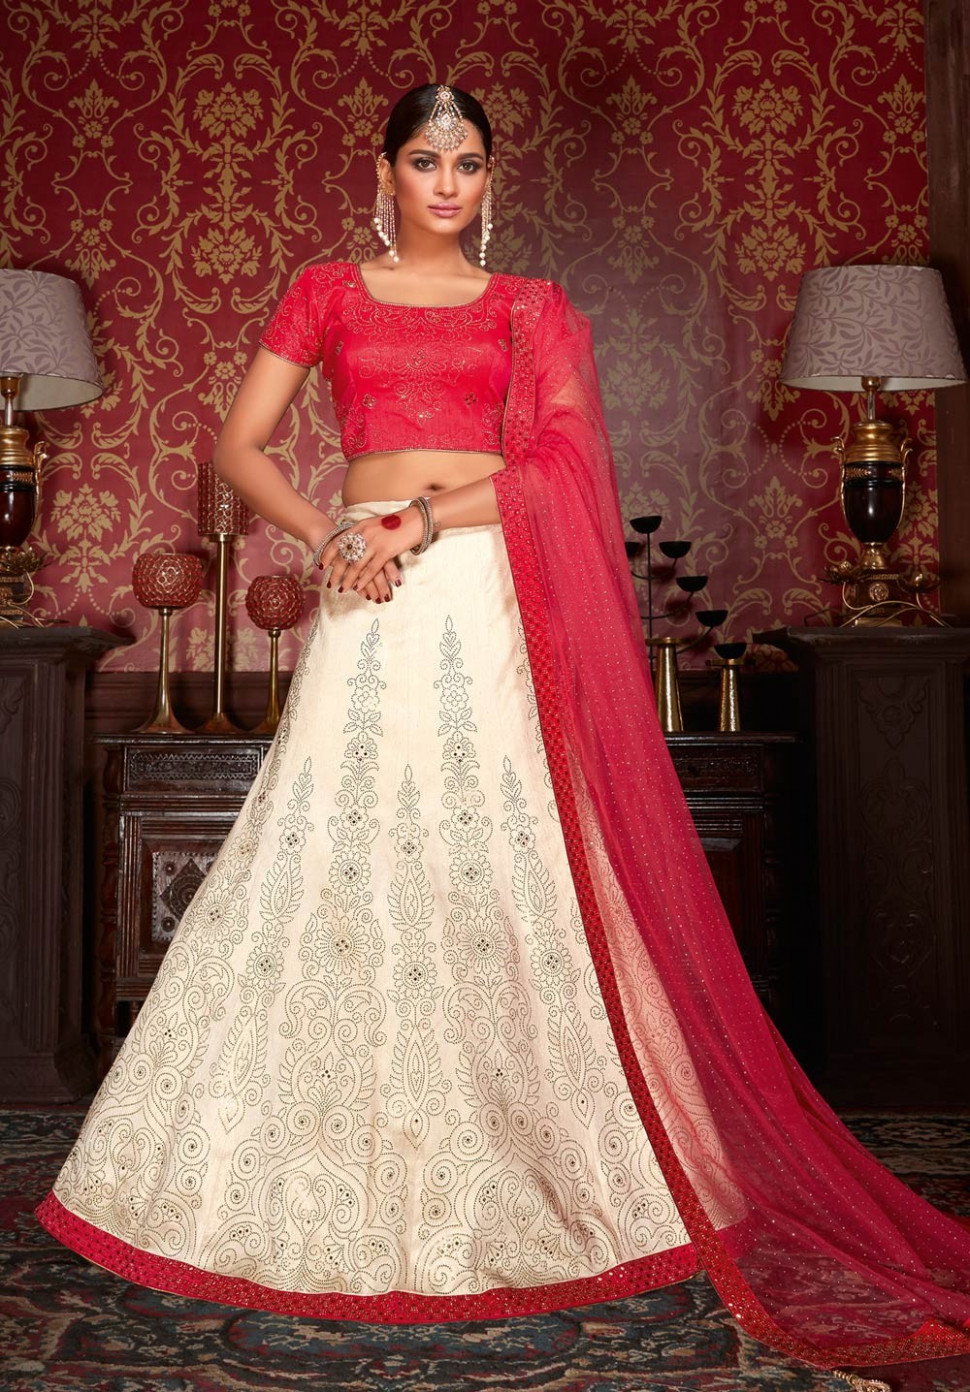 Indian Wedding Wear Outfits 2017, Bridal Lehenga Choli ...